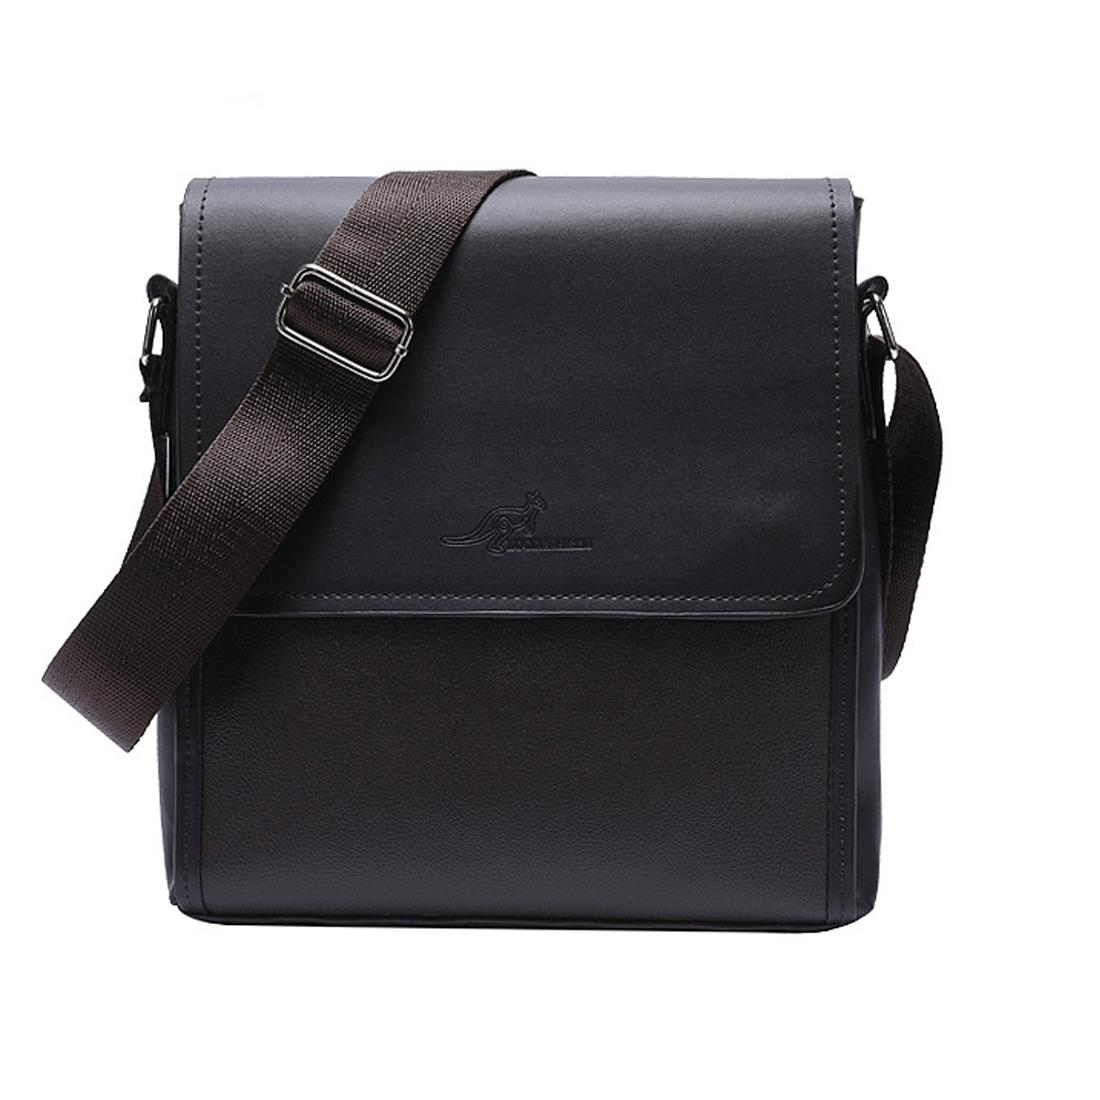 3b03576679 Messenger Bags for sale - Messenger Bags for Men online brands ...